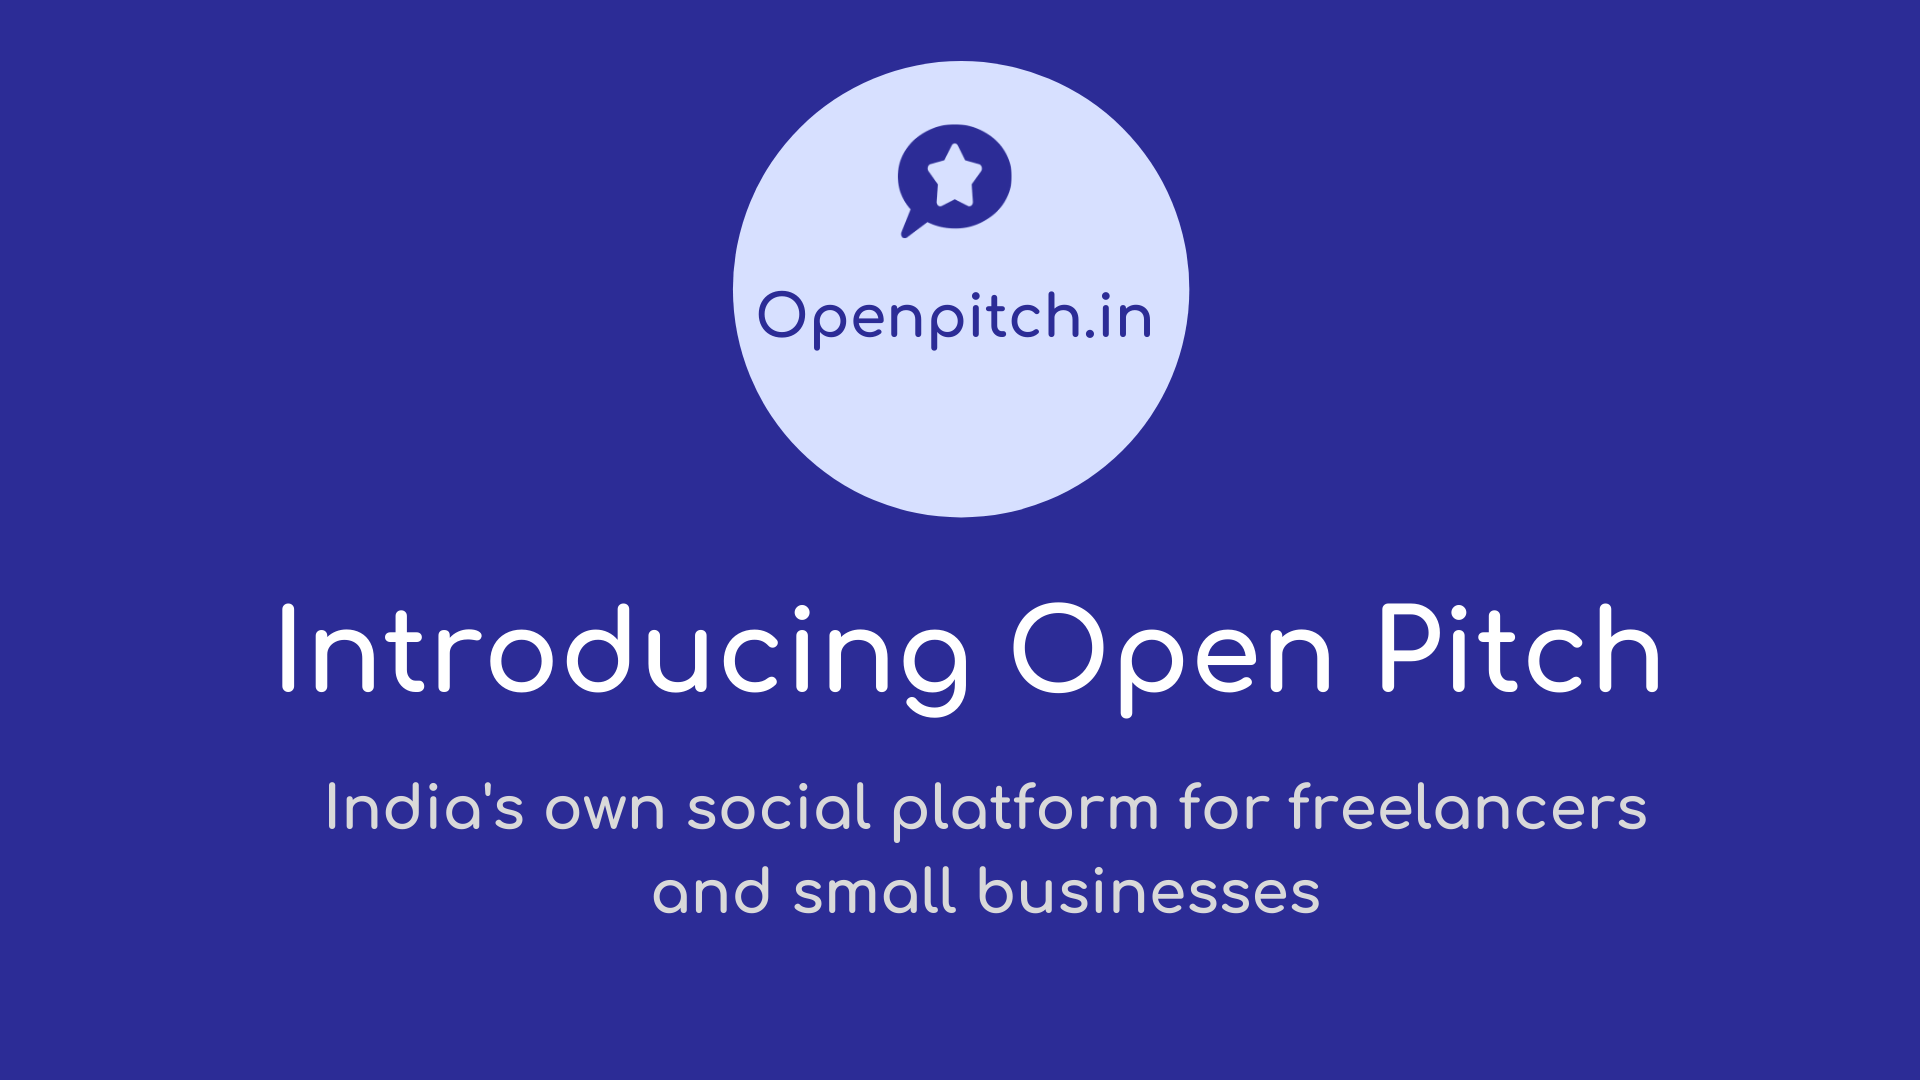 Introducing Open Pitch